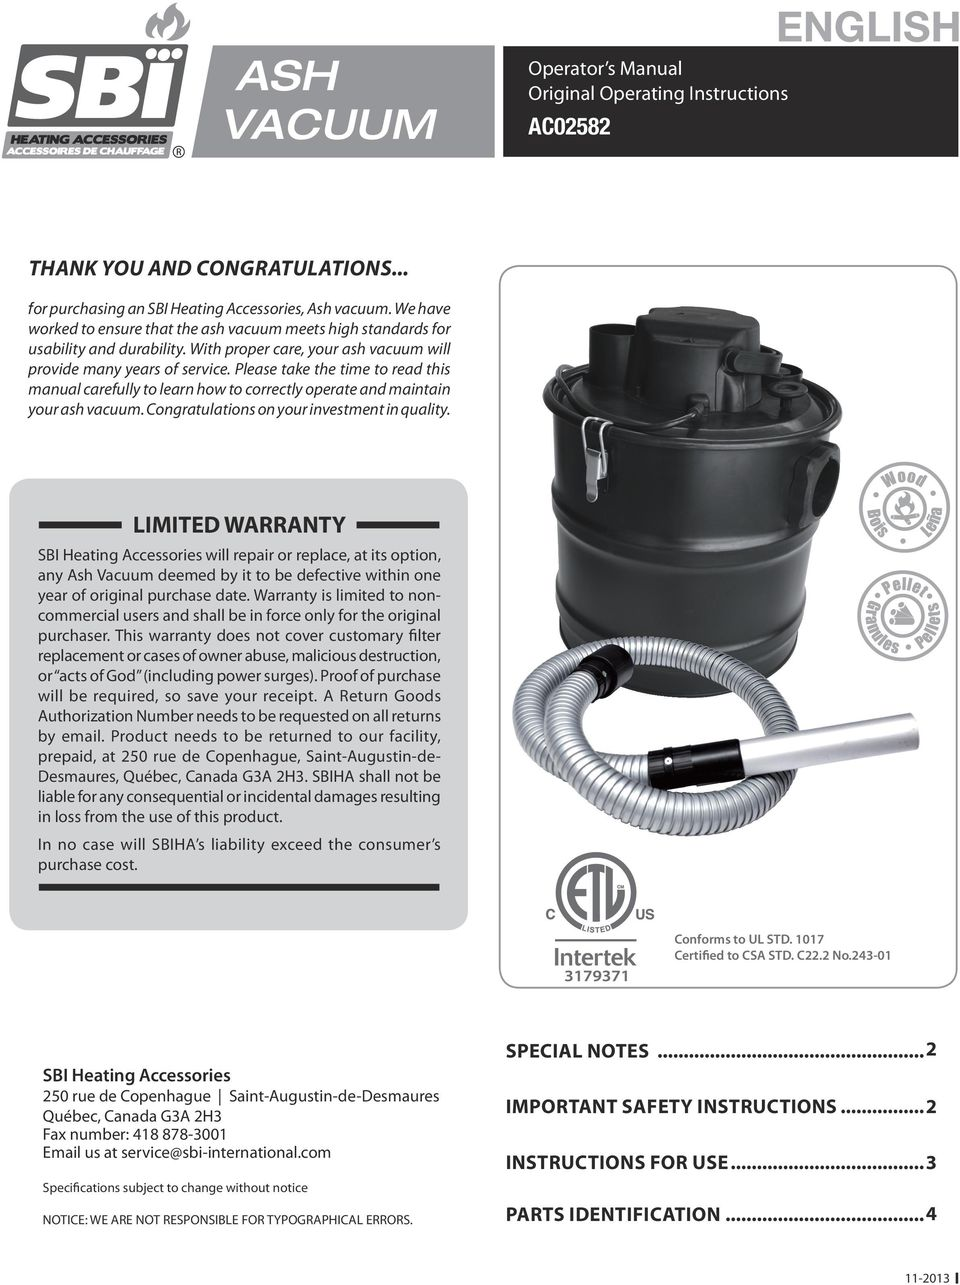 Please take the time to read this manual carefully to learn how to correctly operate and maintain your ash vacuum. Congratulations on your investment in quality.